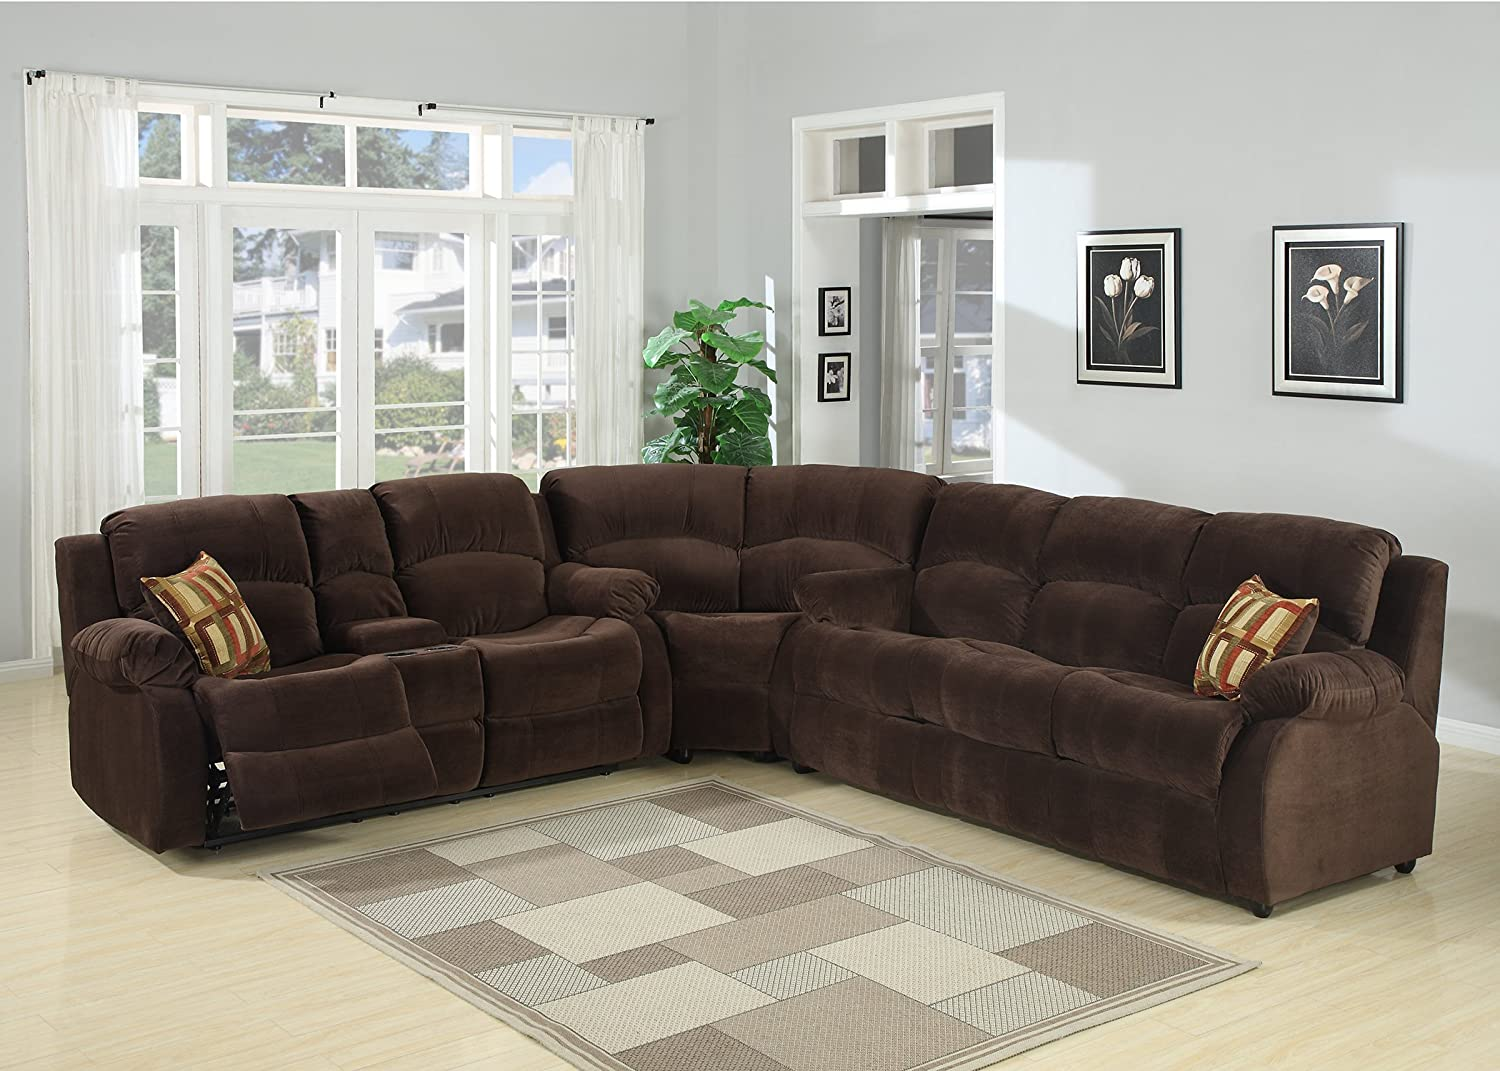 Cool Christies Home Living 3 Piece Tracey Fabric Contemporary Reclining Room Sectional With Sofa Bed Dark Brown Inzonedesignstudio Interior Chair Design Inzonedesignstudiocom